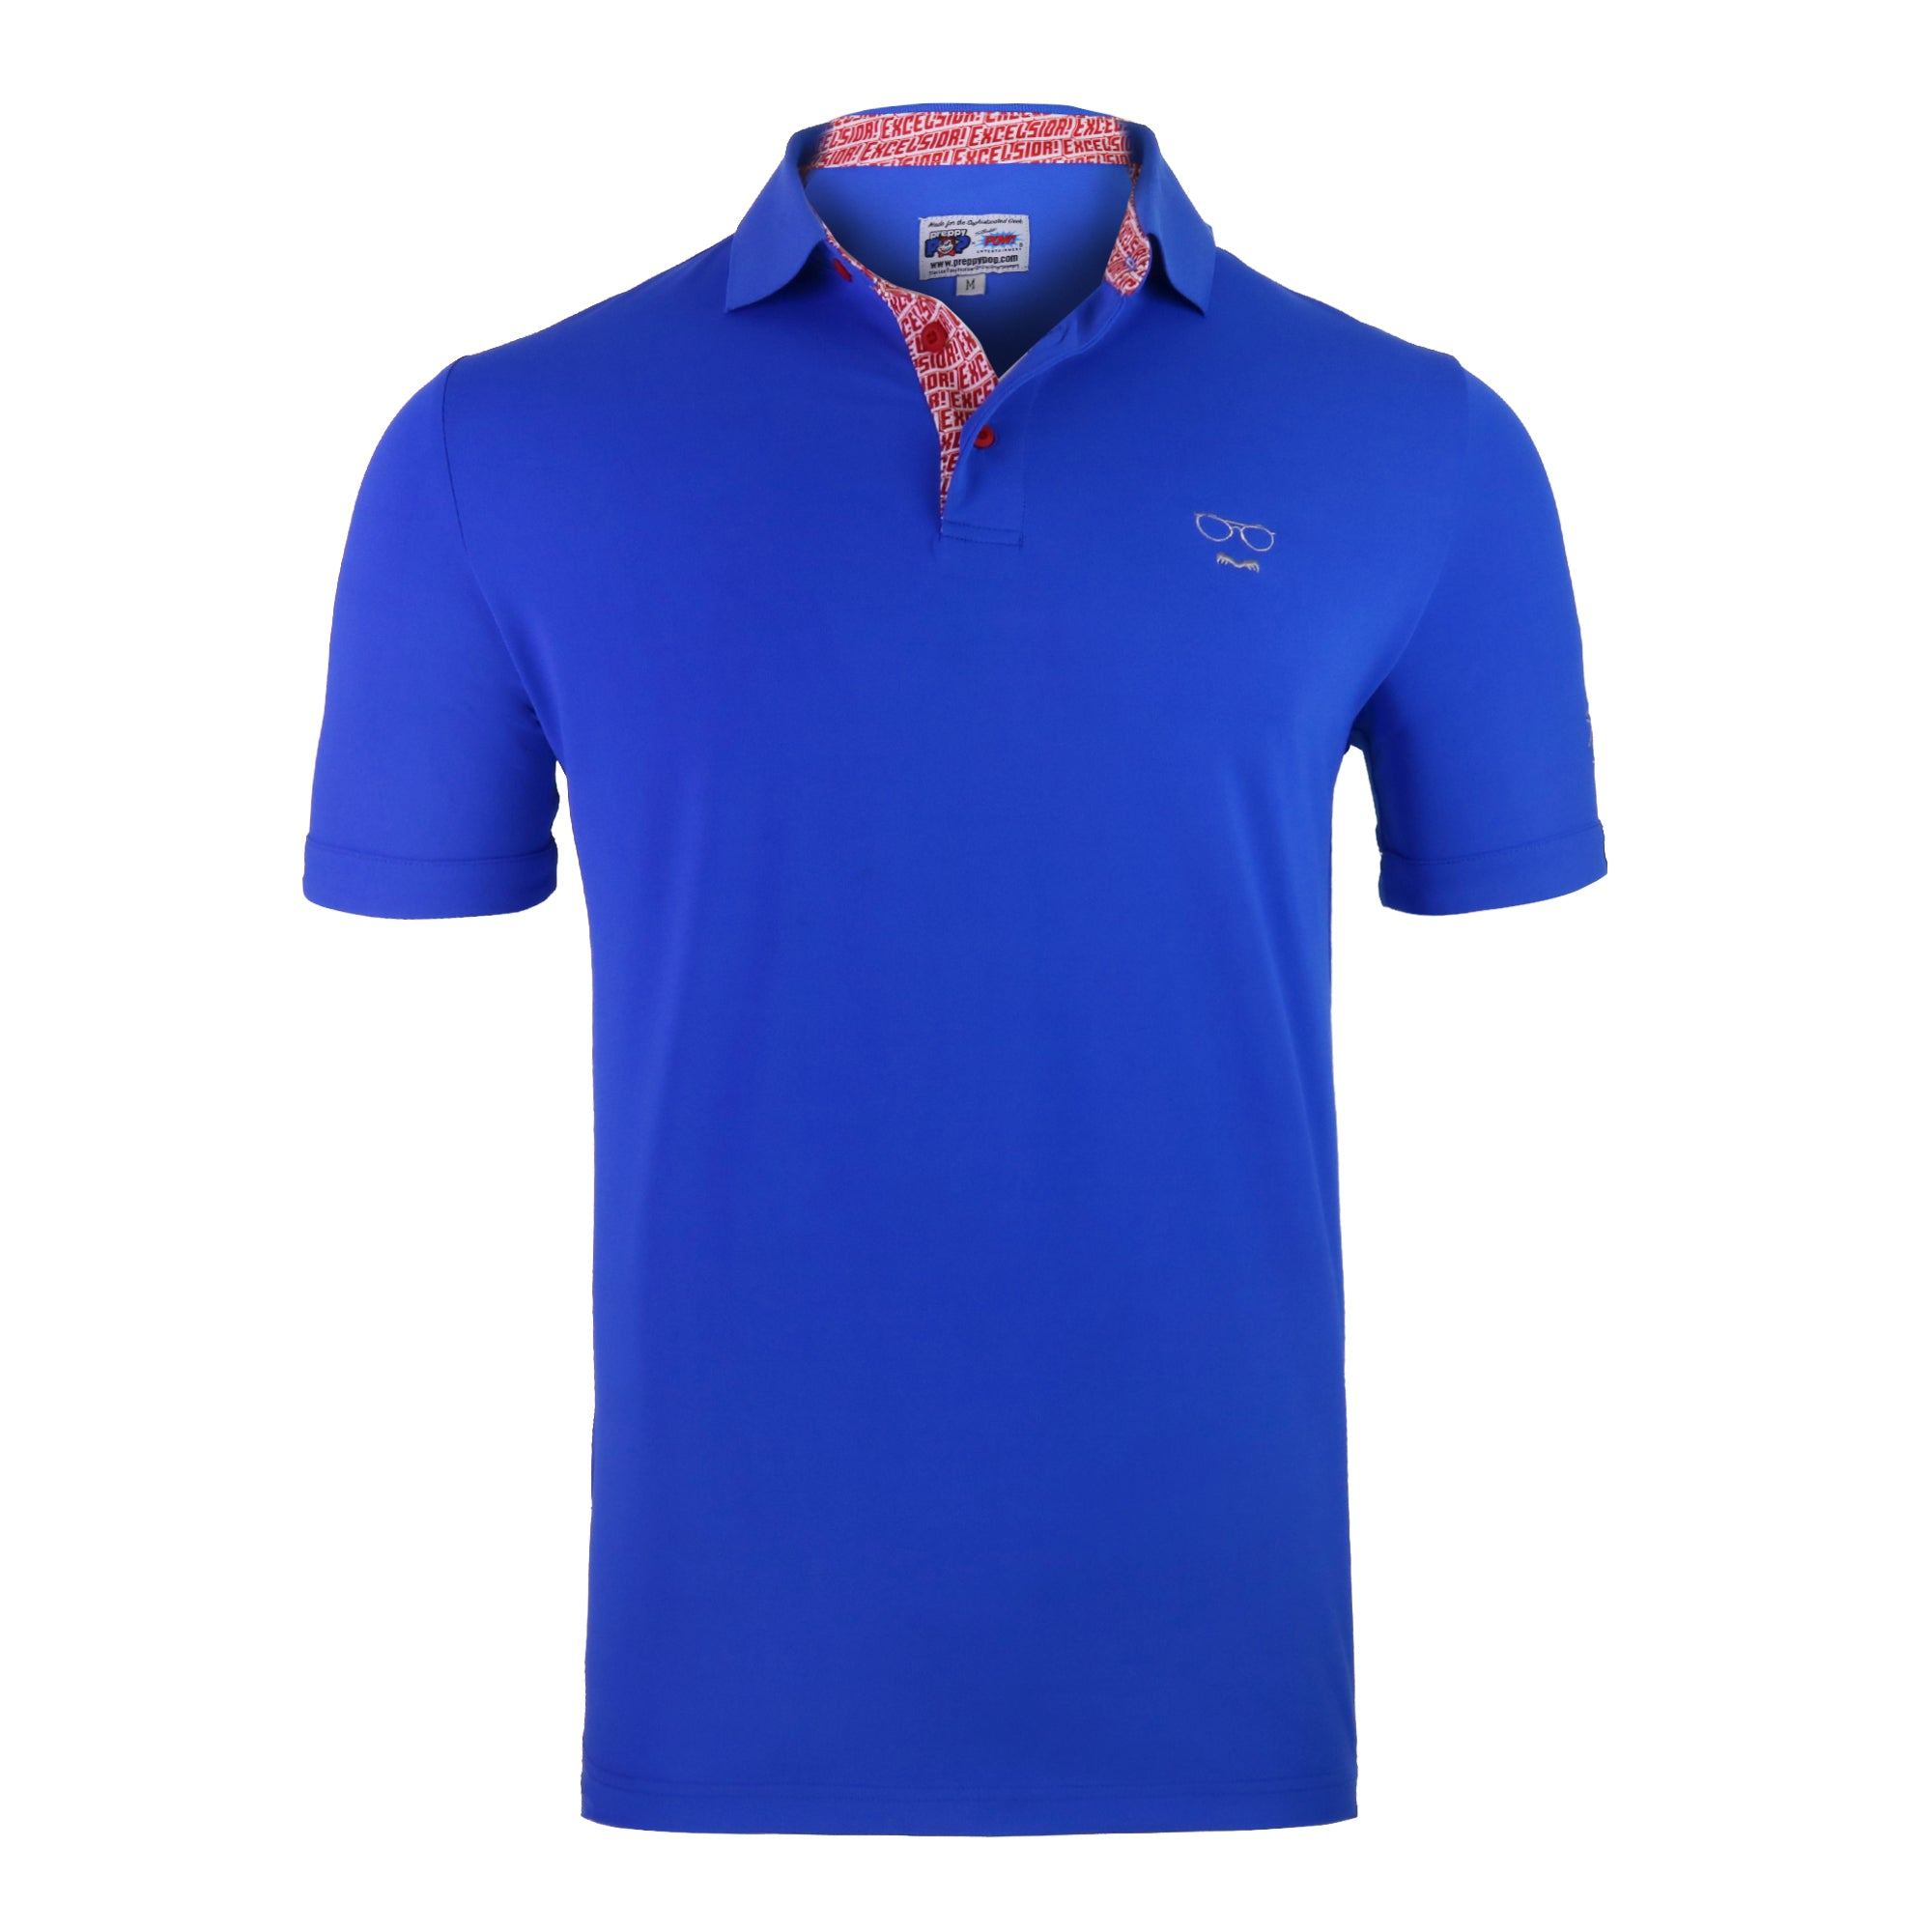 Stan Lee Signature Polo - Royal Blue